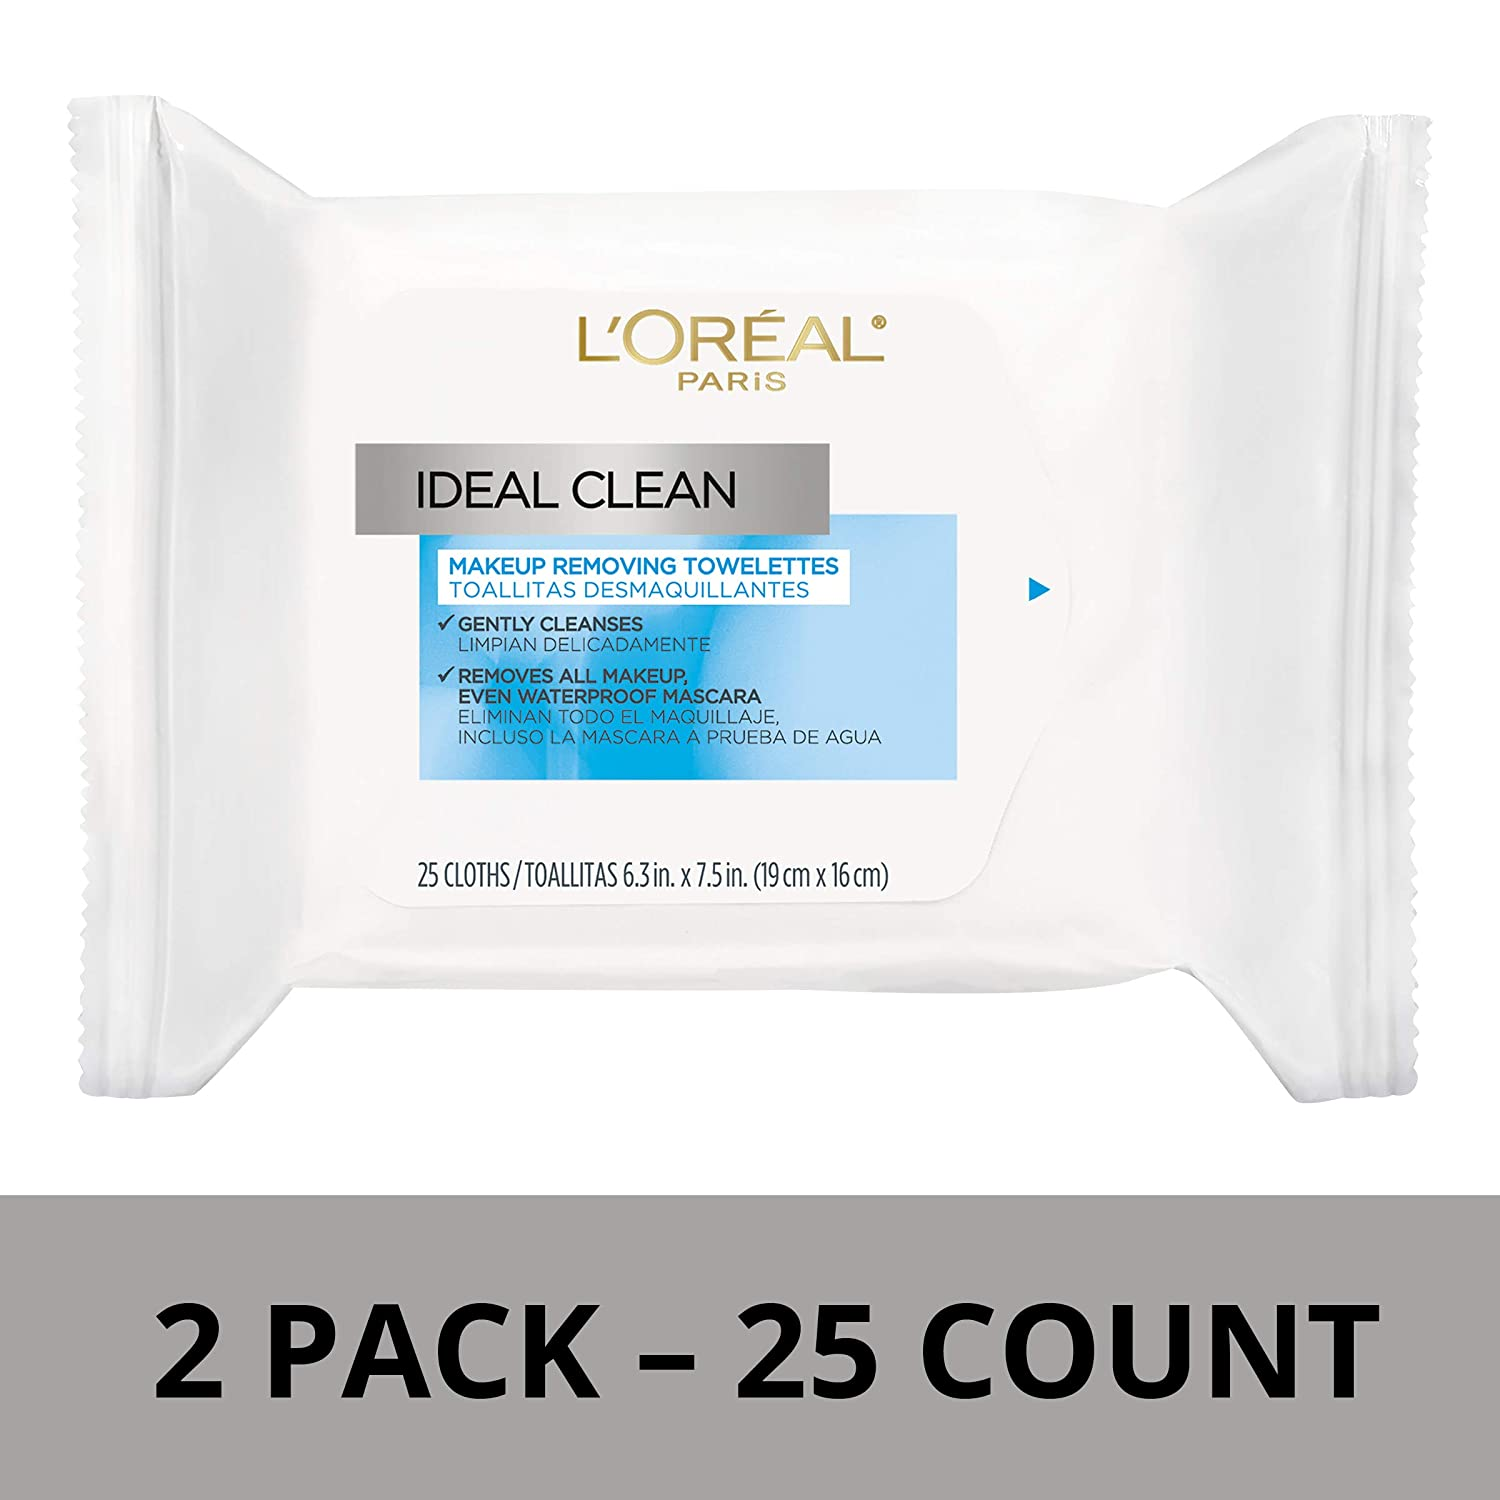 LOreal Paris Skin Care Ideal Clean Makeup Removing Facial Towelettes, 2 Count